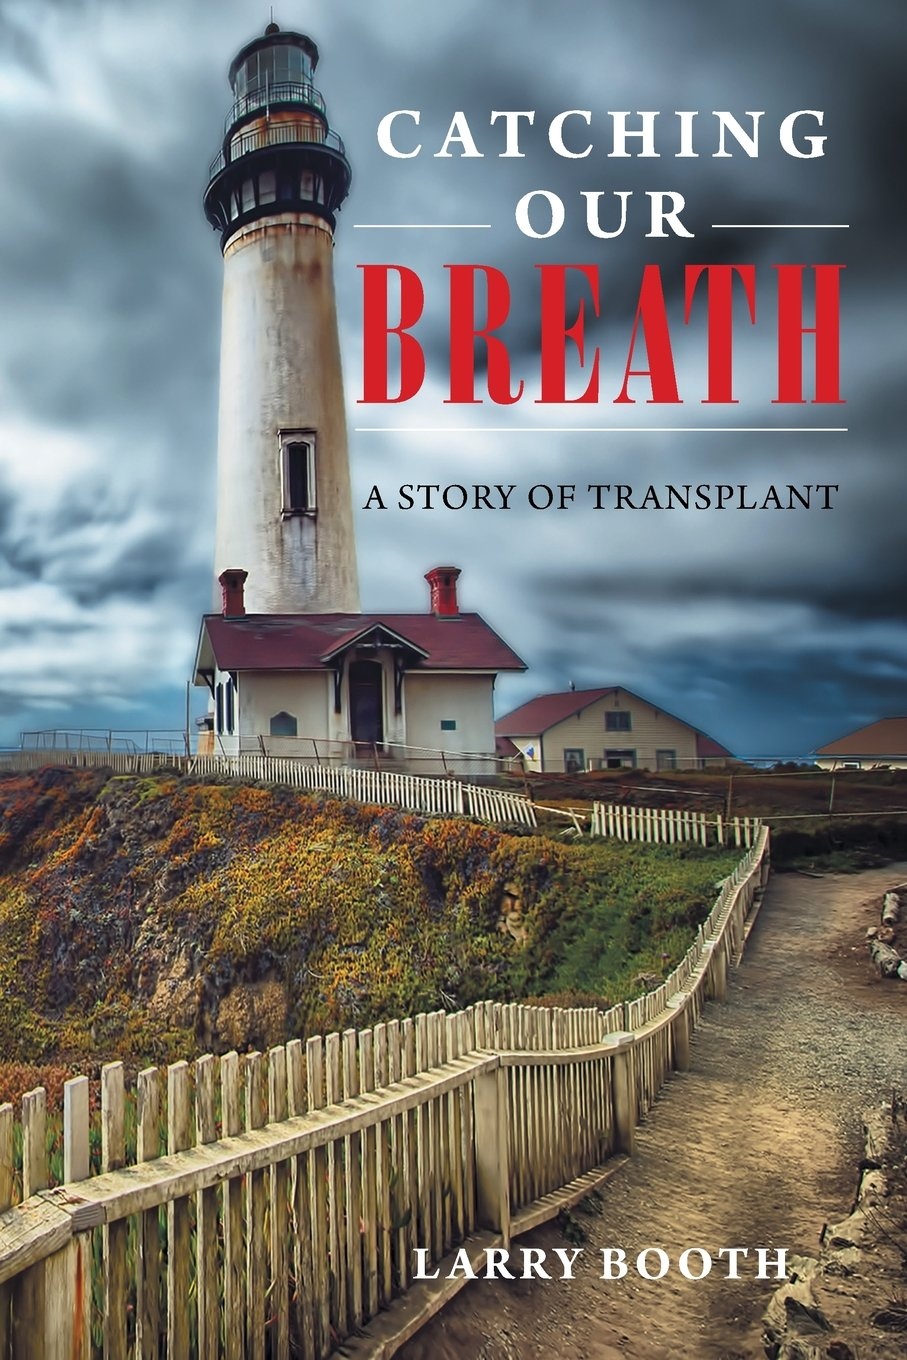 Catching Our Breath: A Story of Transplant: Larry Booth